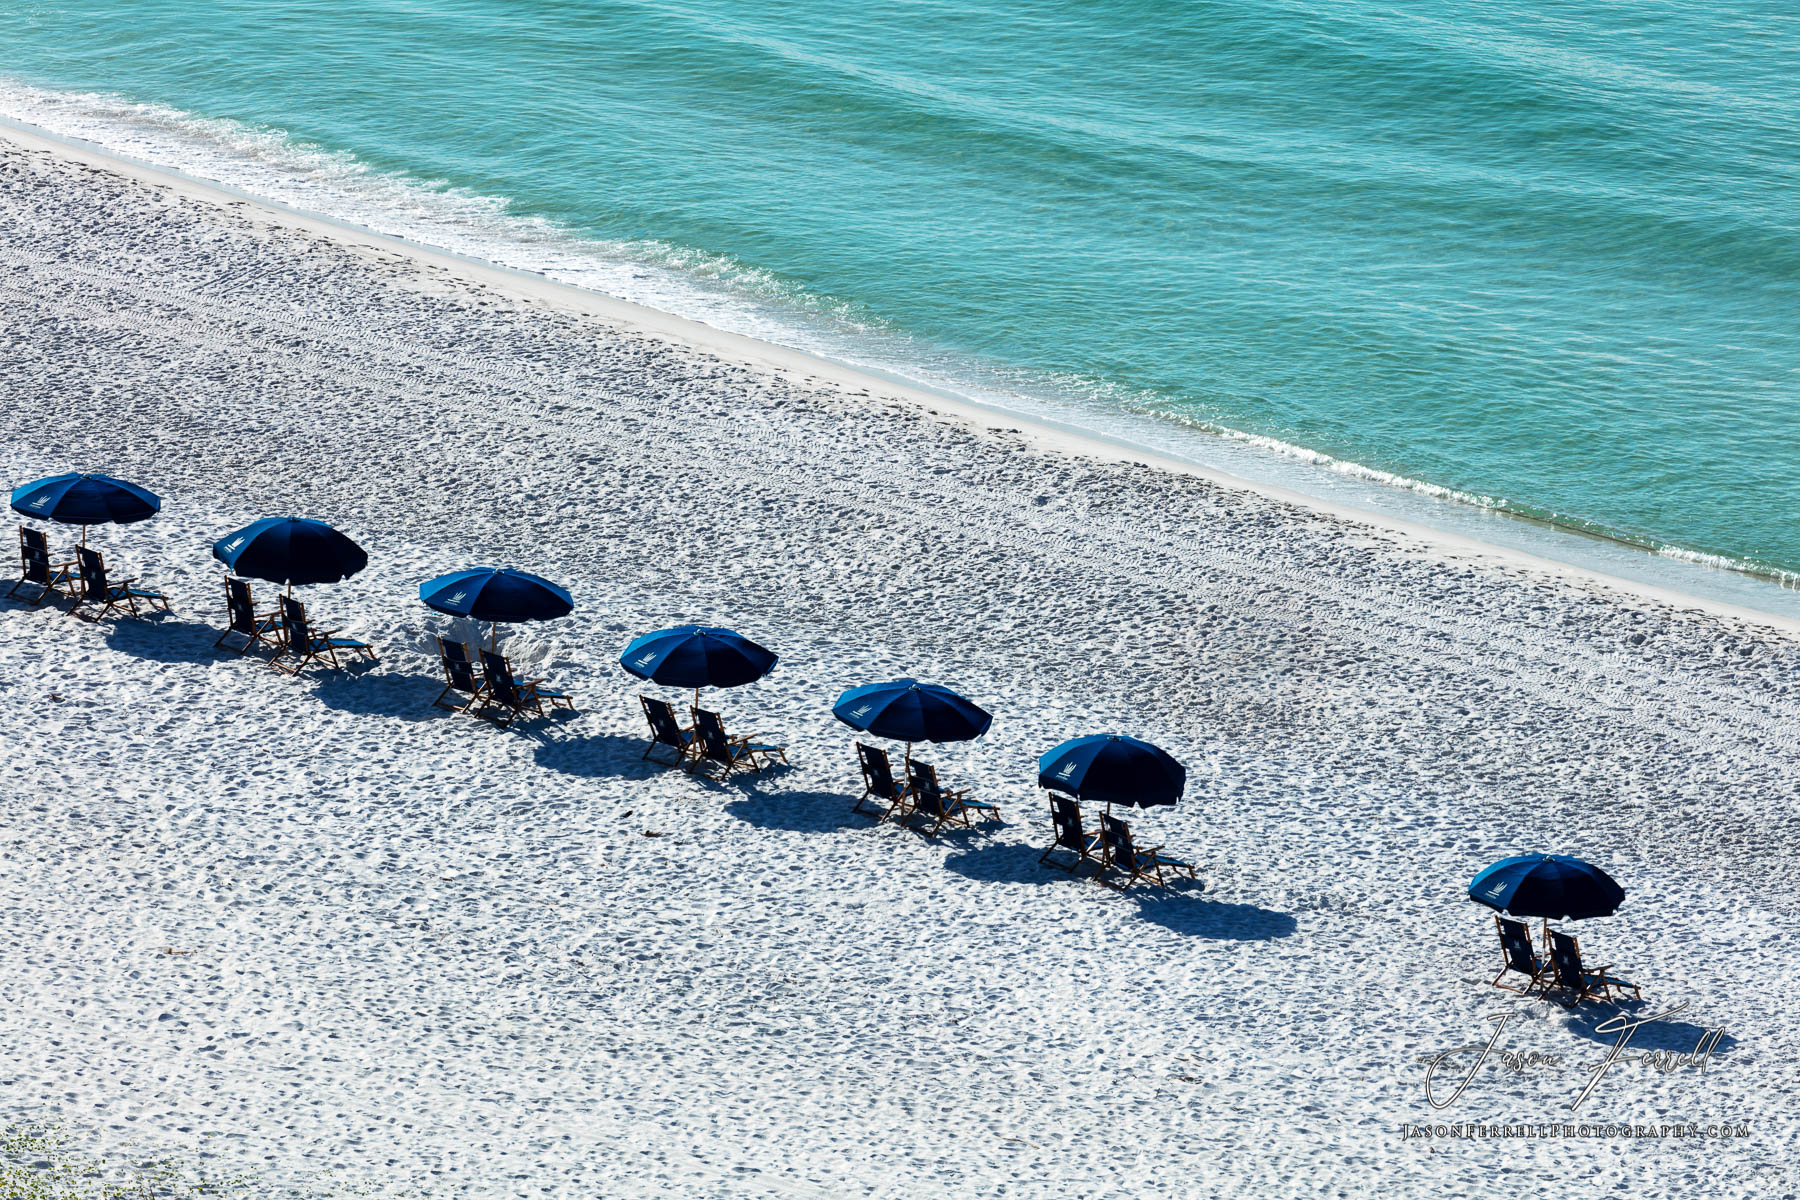 summer, beach, water, ocean, blue, green, white, people, tanning, umbrellas, photo